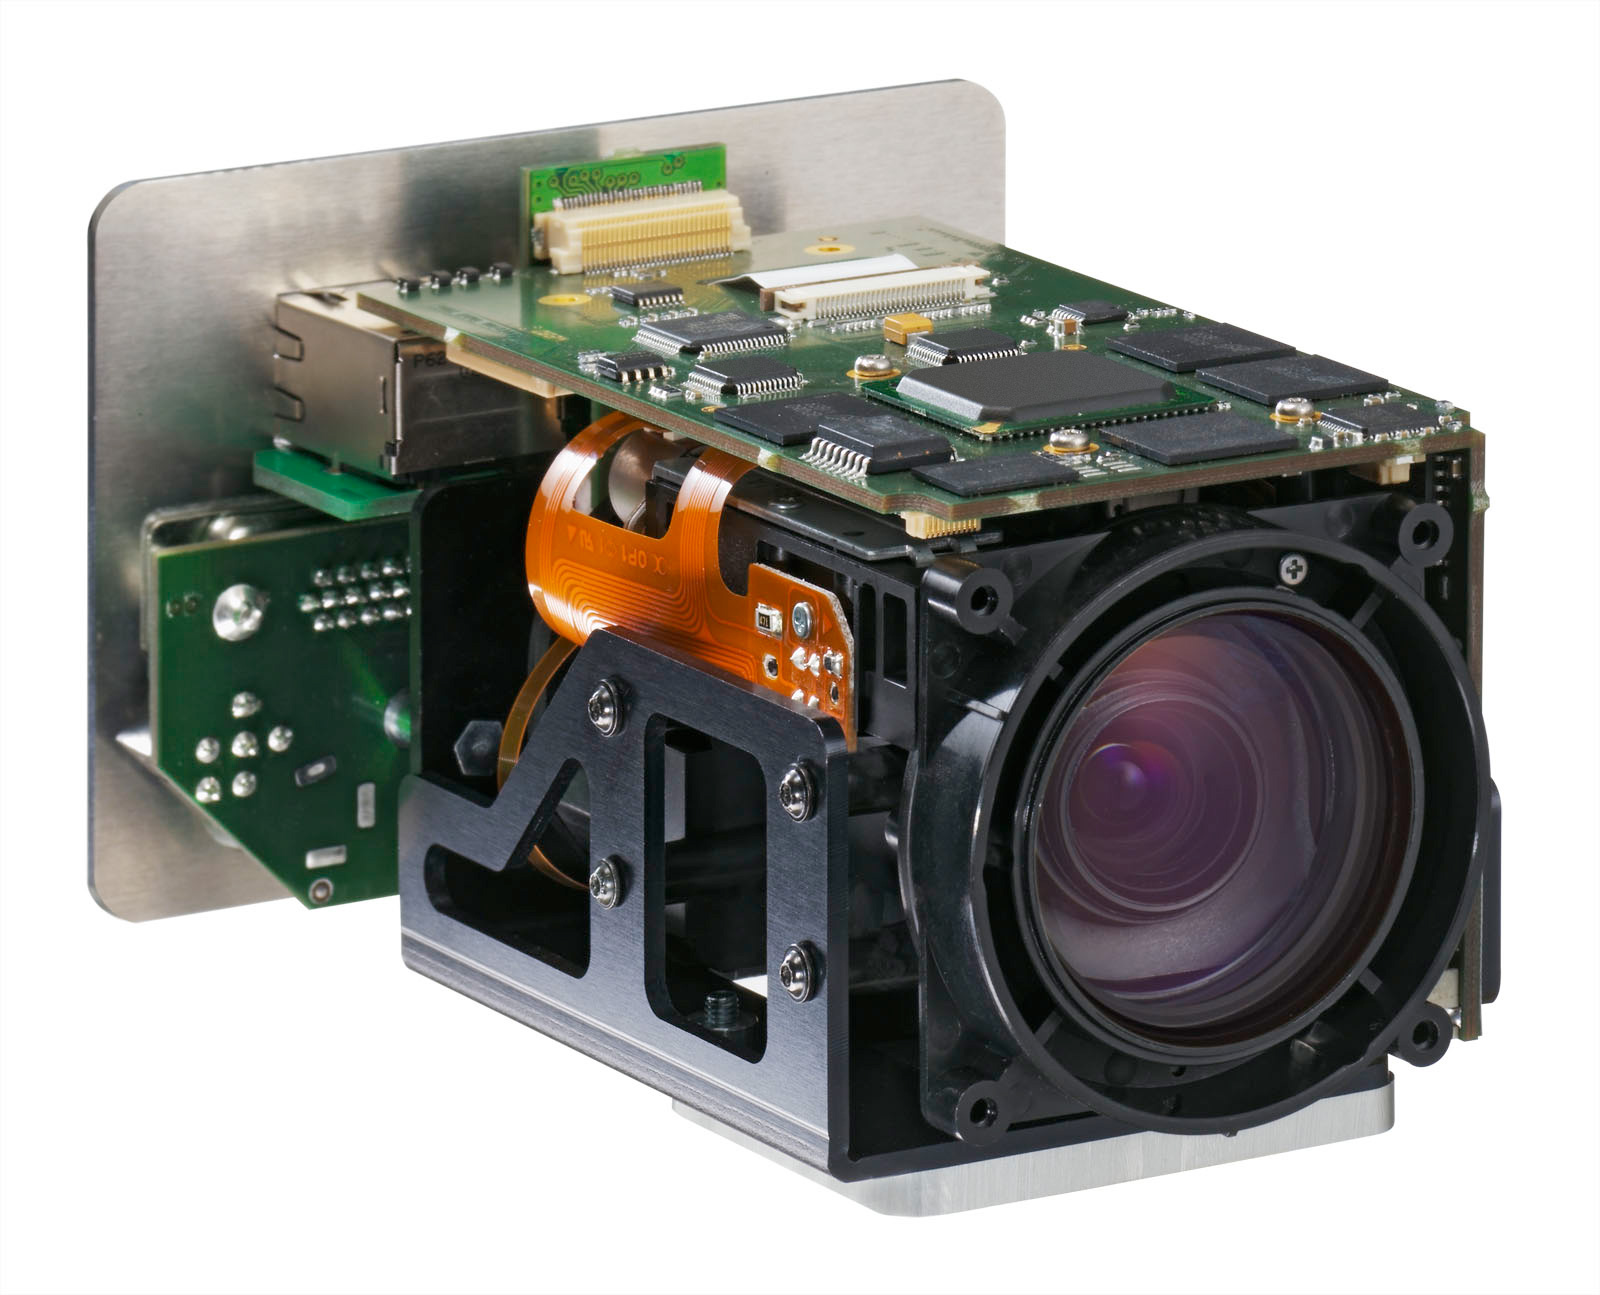 WOLFVISION SCB-1 CAMERA MODULE WINDOWS 8 DRIVERS DOWNLOAD (2019)